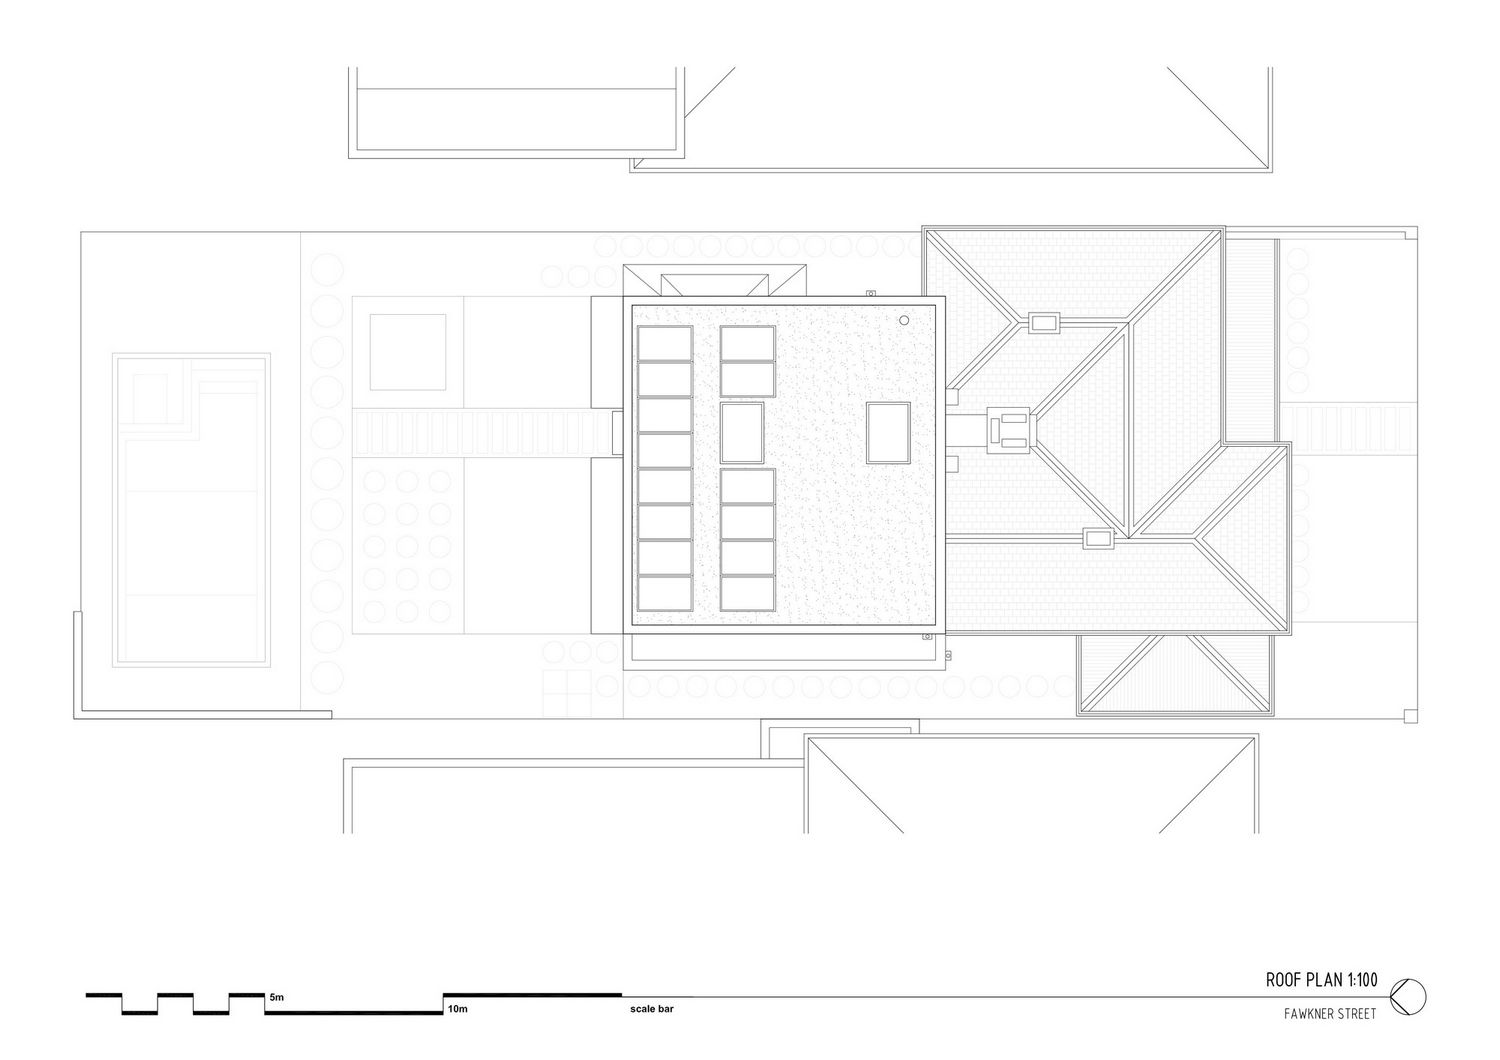 Fawkner Street House в Австралии от Workshop Architecture